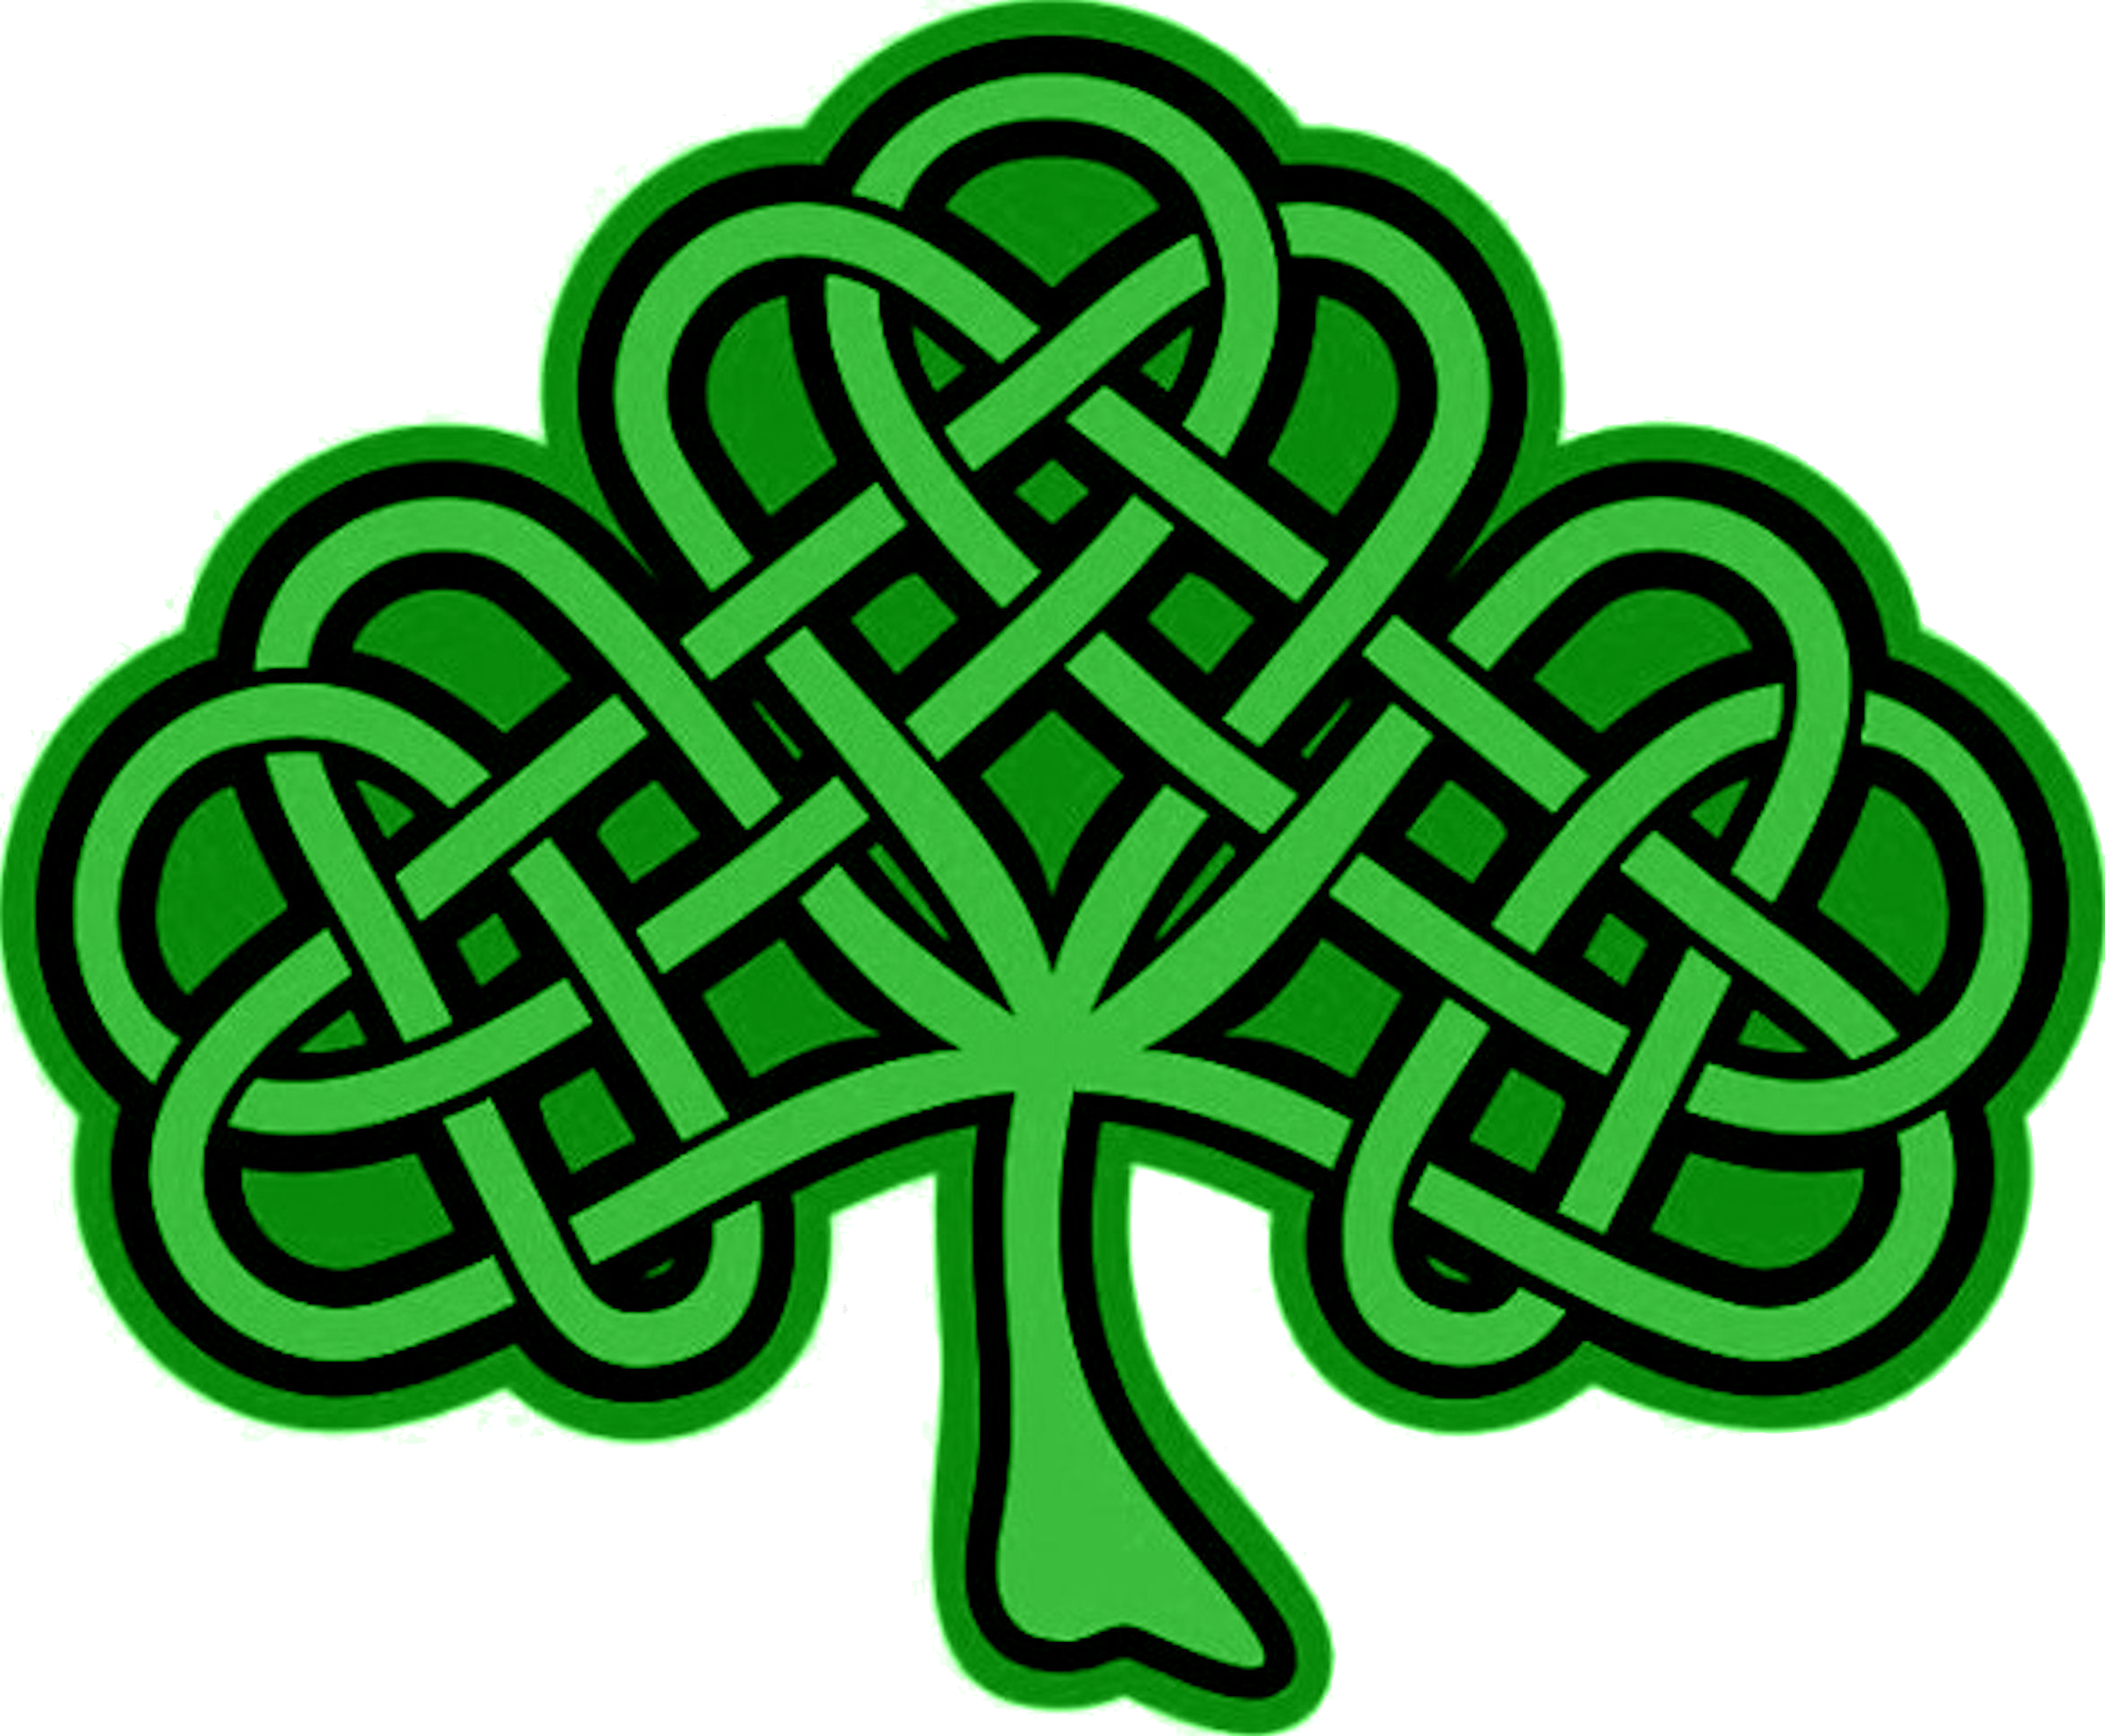 Celtic Cross With Shamrock Celtic cross with shamrock